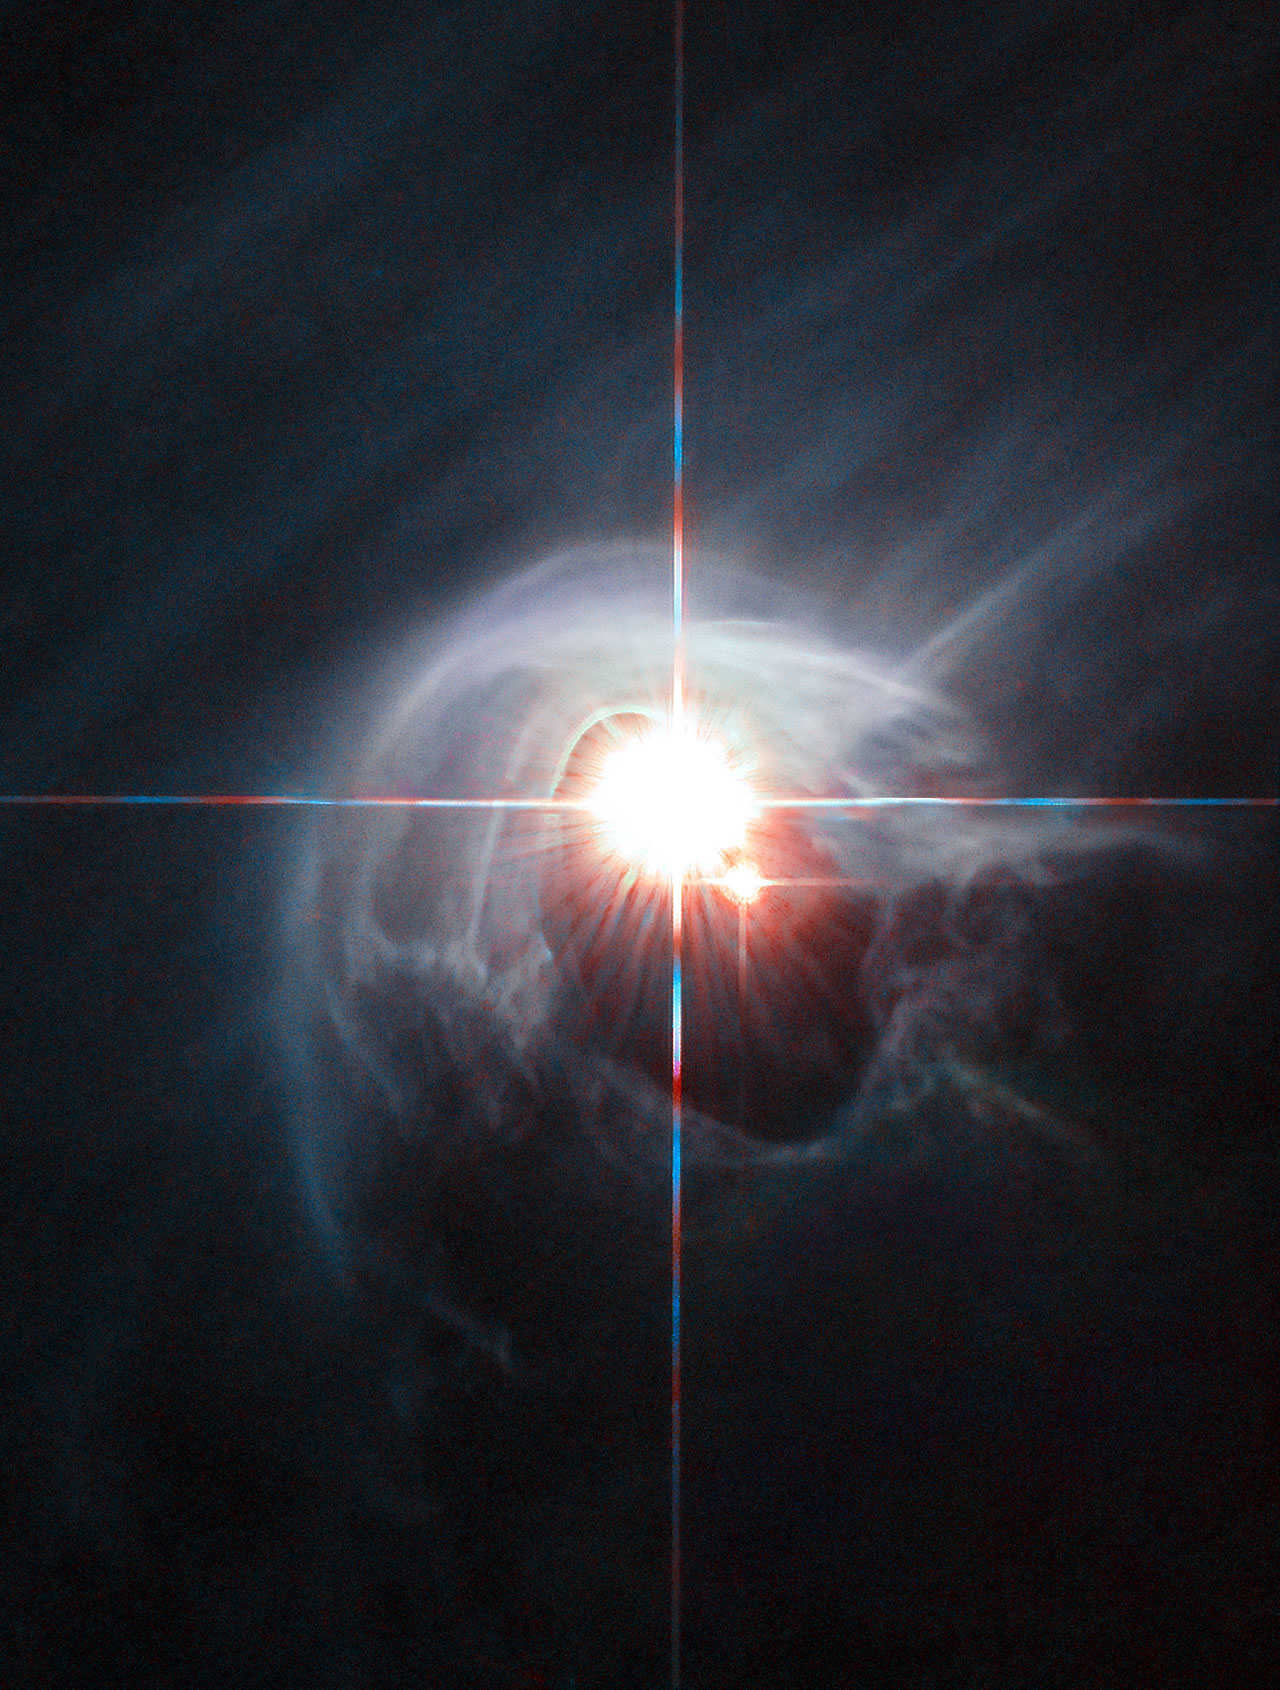 Image: Hubble captures DI Cha star system